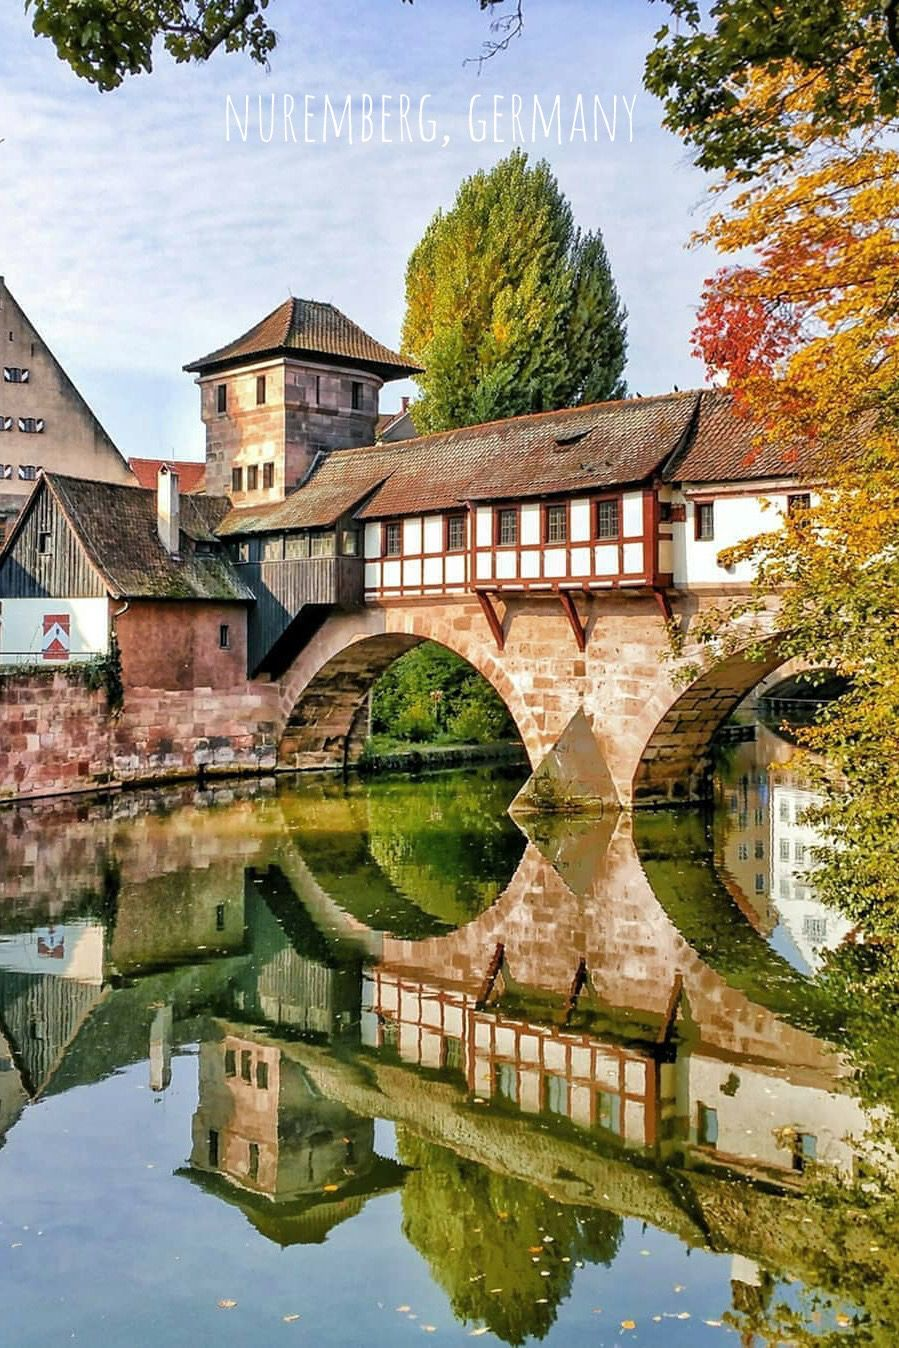 Nuremberg Germany Nuremberg Is The Second Largest City Of The German Federal State Of Bavaria After Its Beautiful Places Travel And Leisure Places To Travel